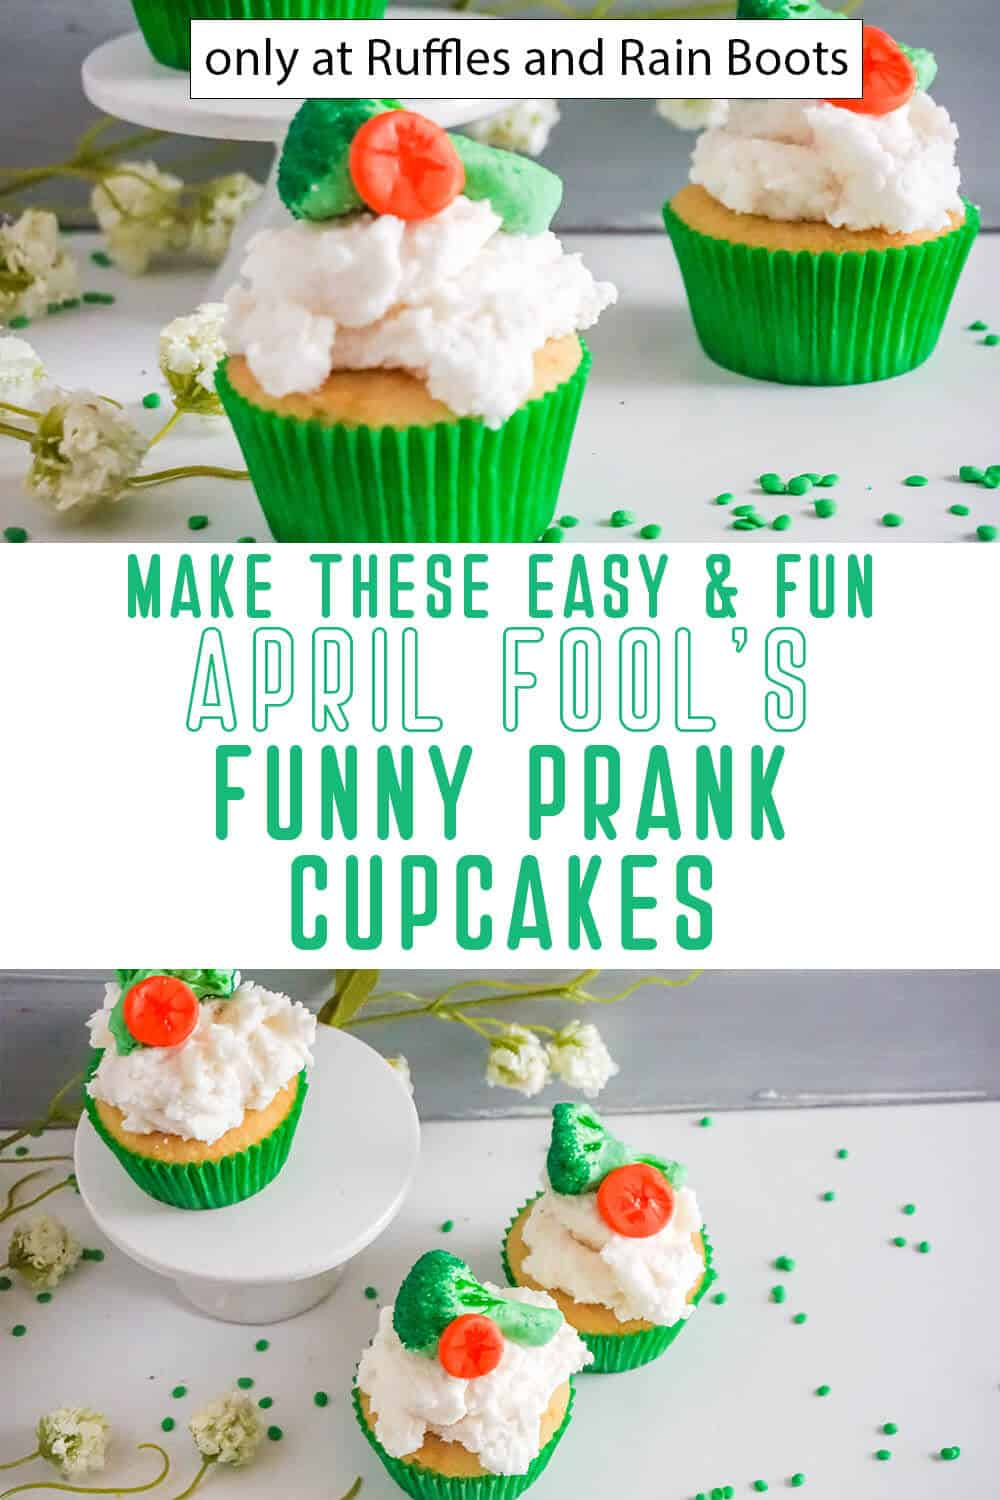 photo collage of april fool's cupcakes decorating idea with text which reads make these easy & fun april fool's funny prank cupcakes